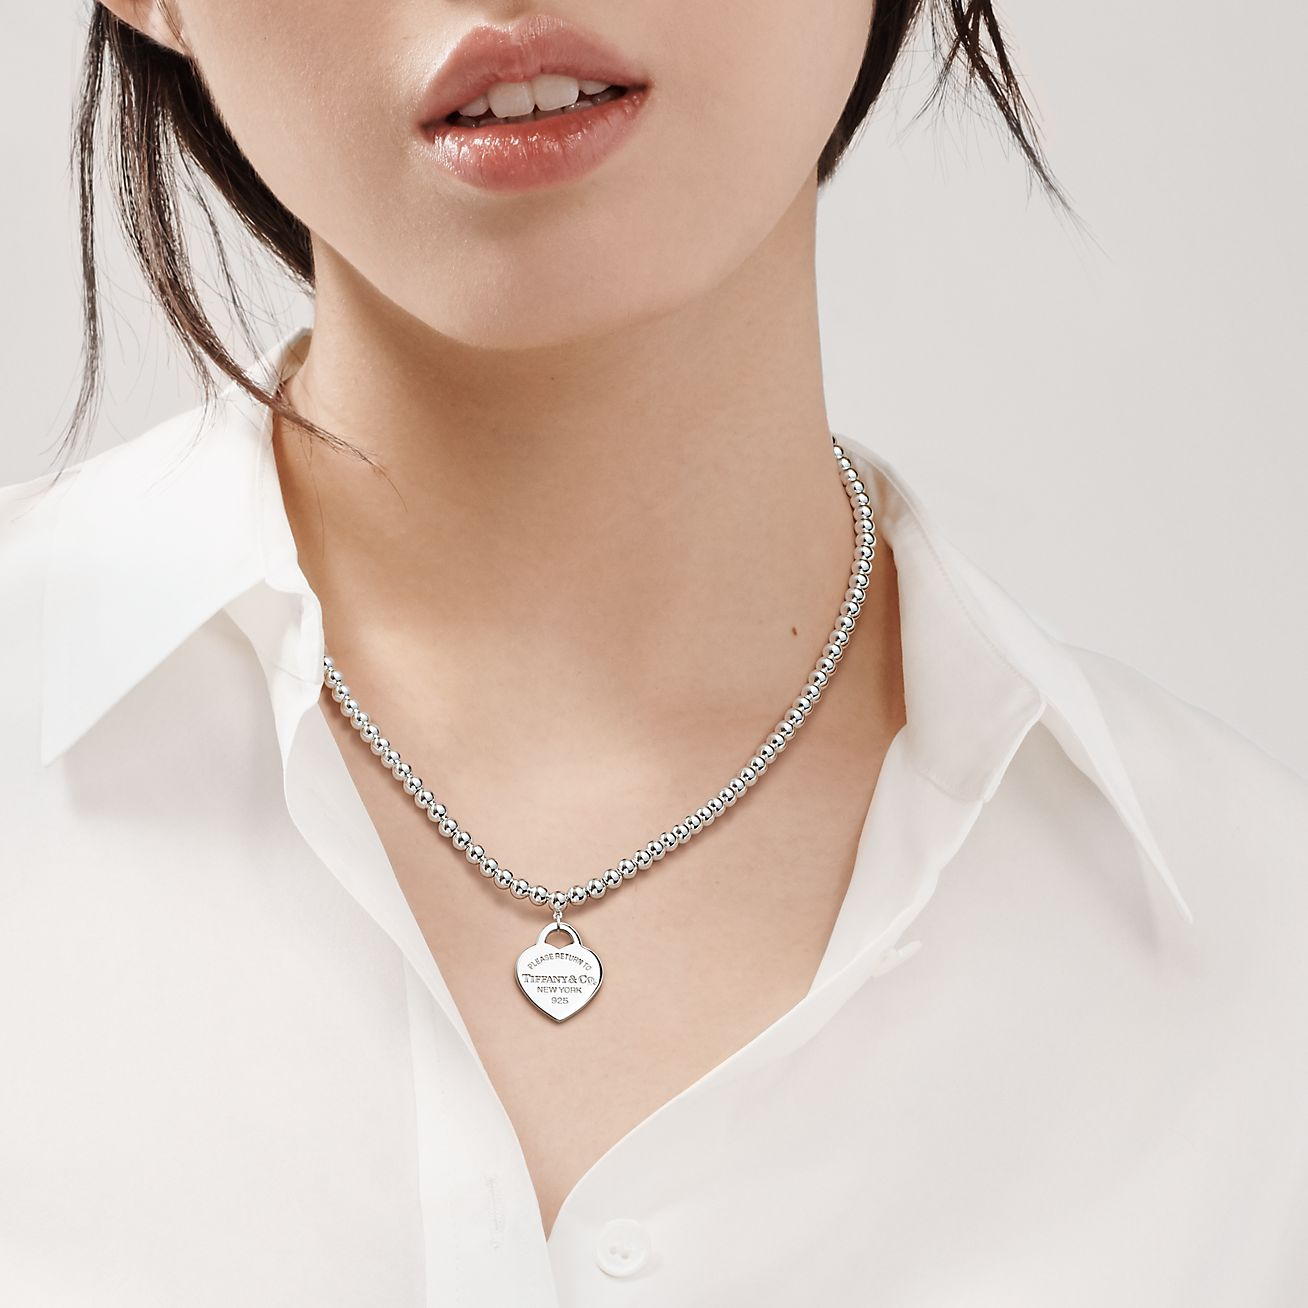 Return To Tiffany Small Heart Tag In Sterling Silver On A Bead Necklace Tiffany Co